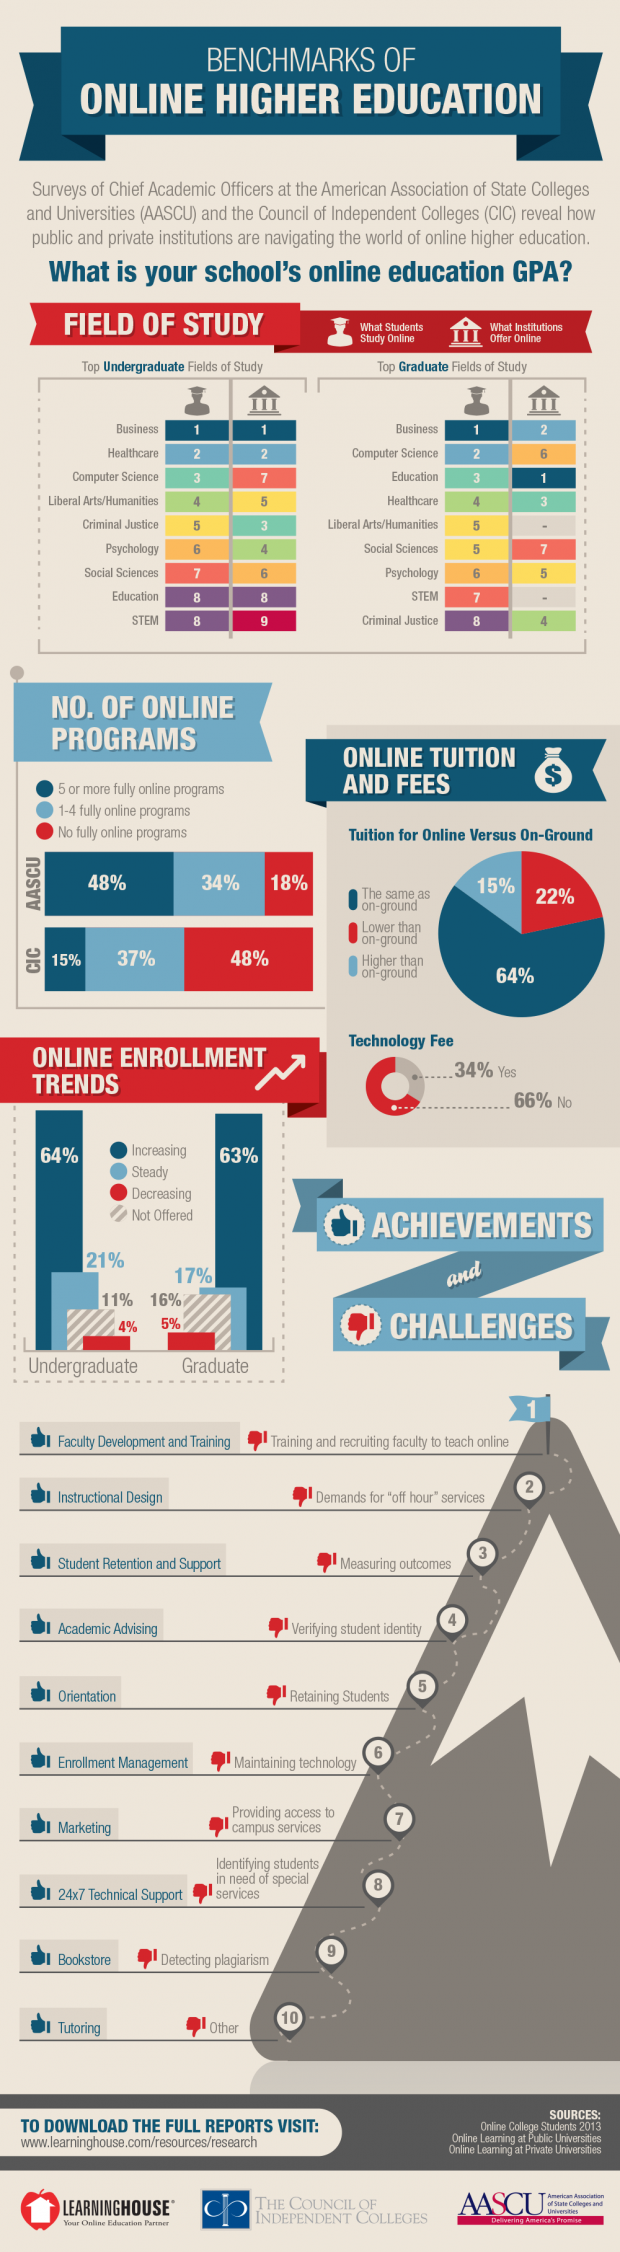 Benchmarks-of-Online-Higher-Education-Large